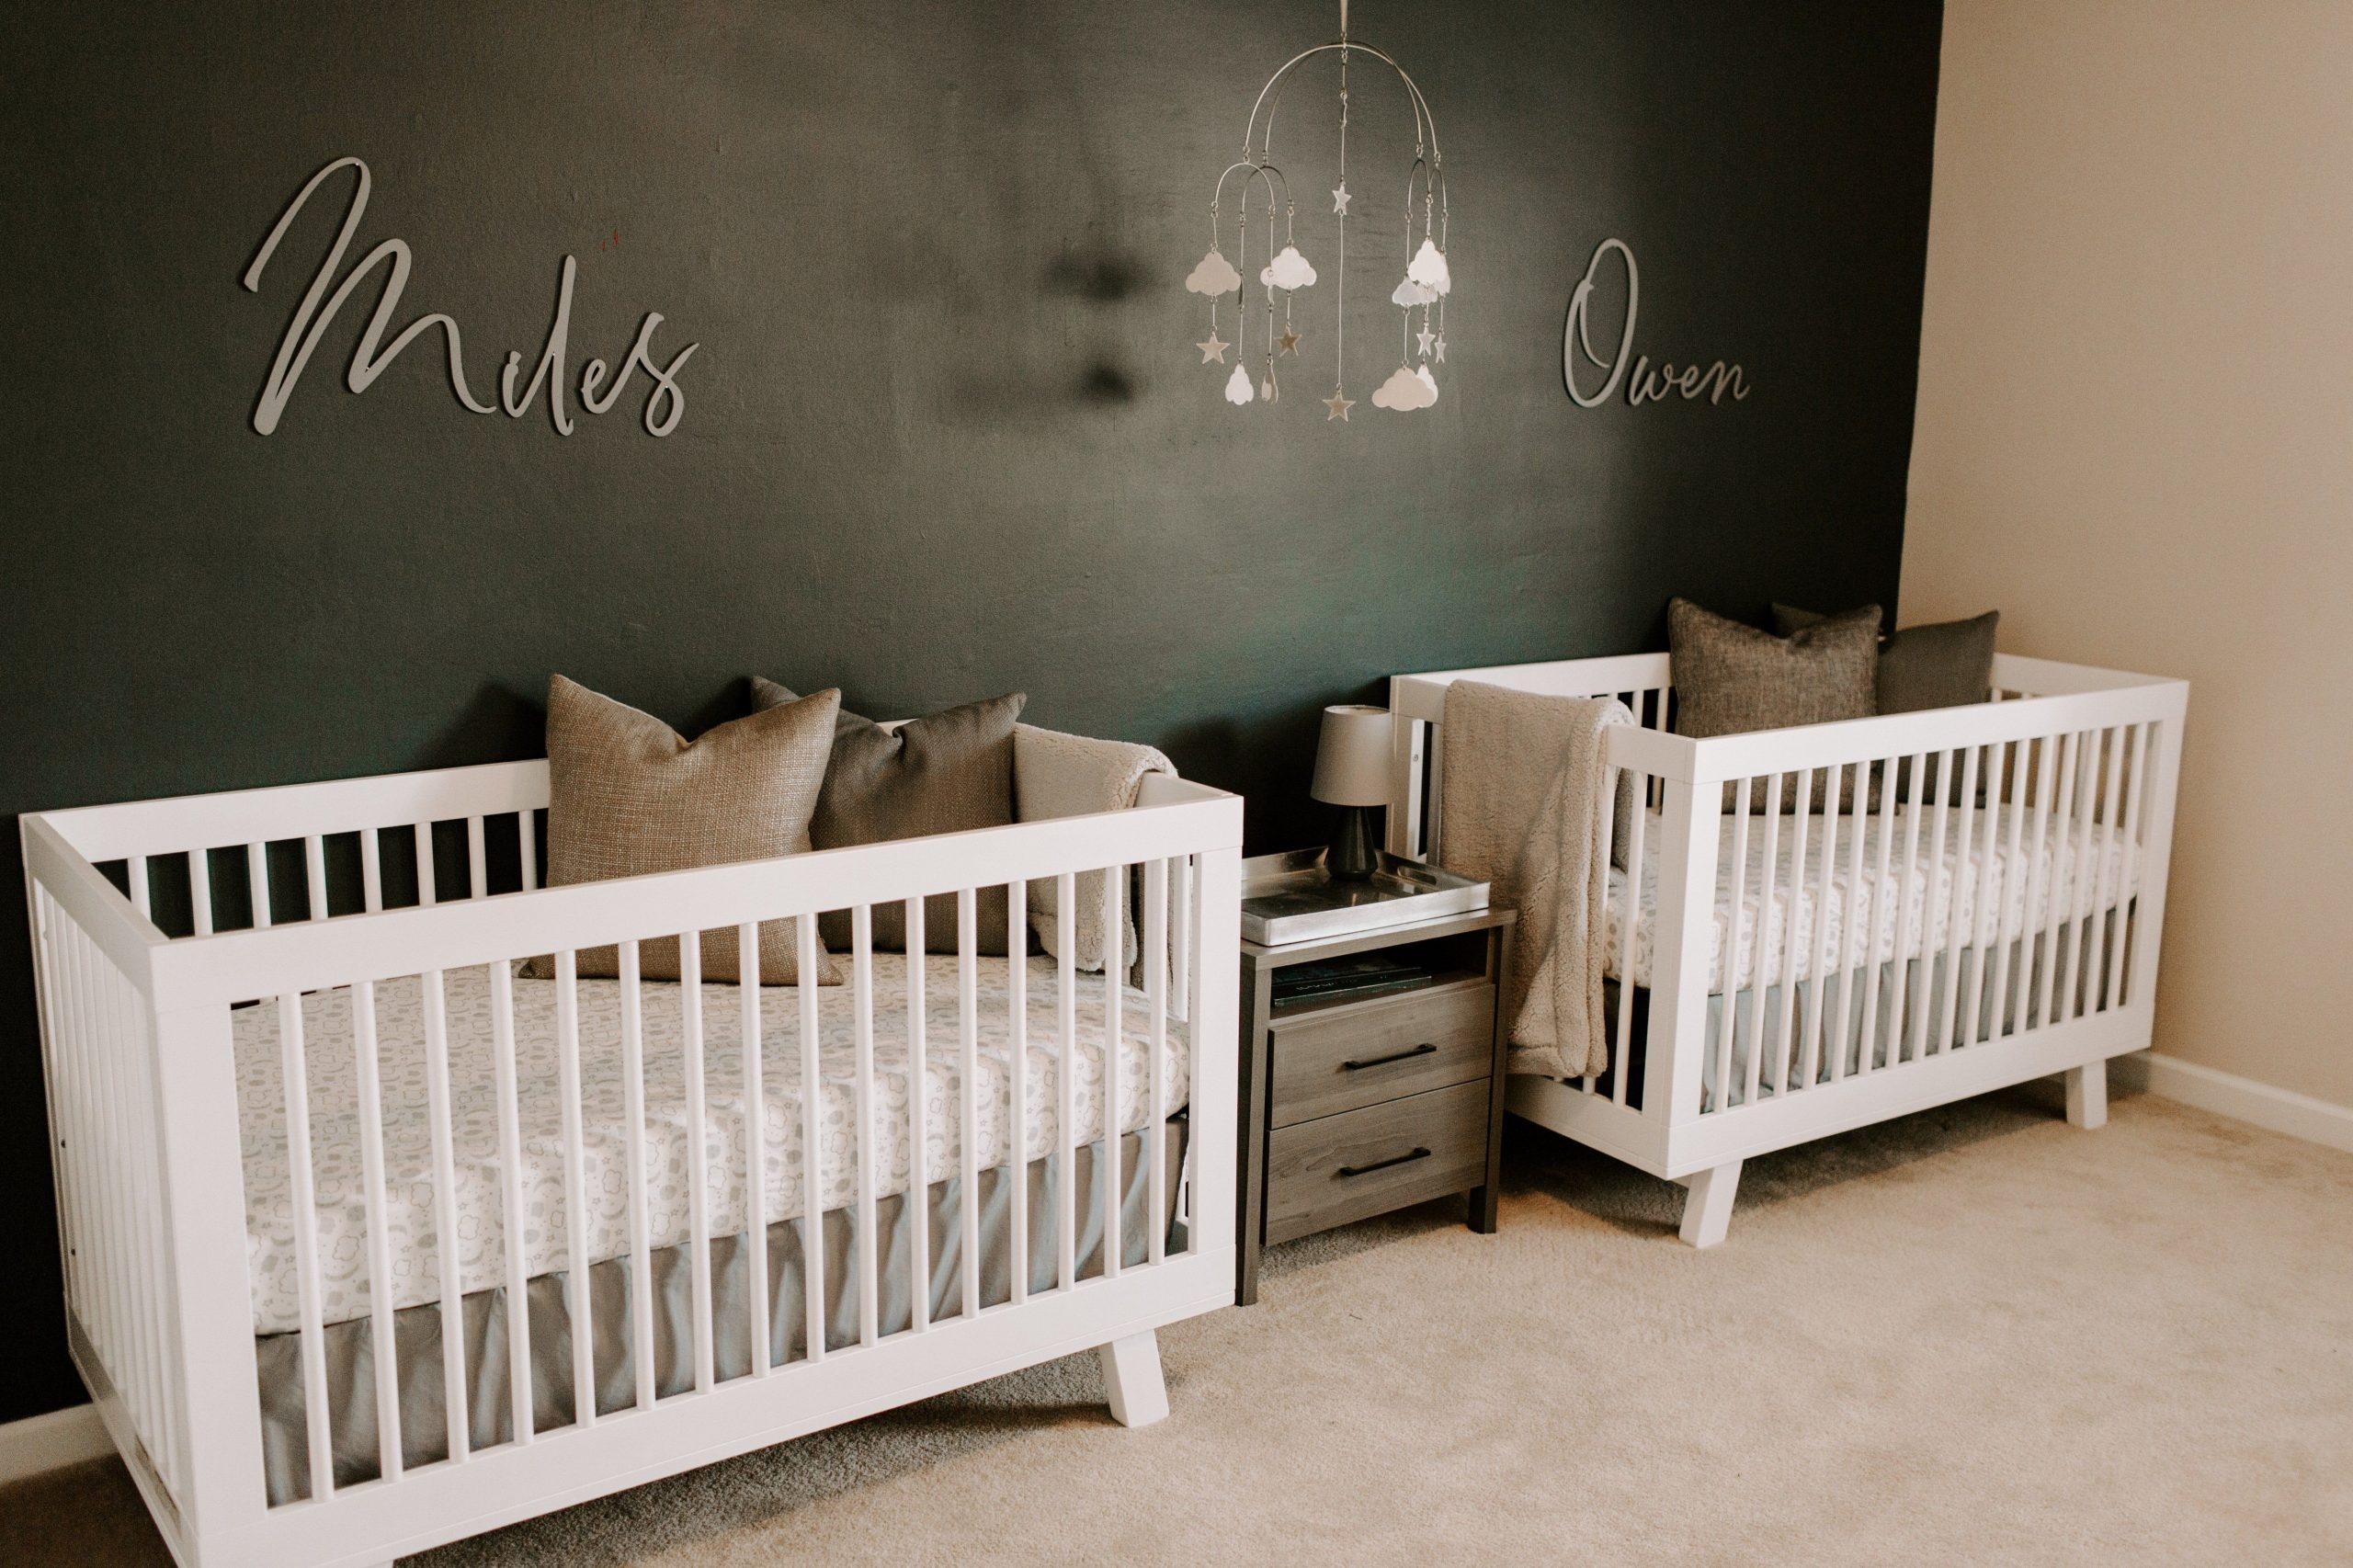 Nursery Name Sign for Baby Bedroom Wall Decor Wooden Letters Kids  - Baby Room Wall Ideas